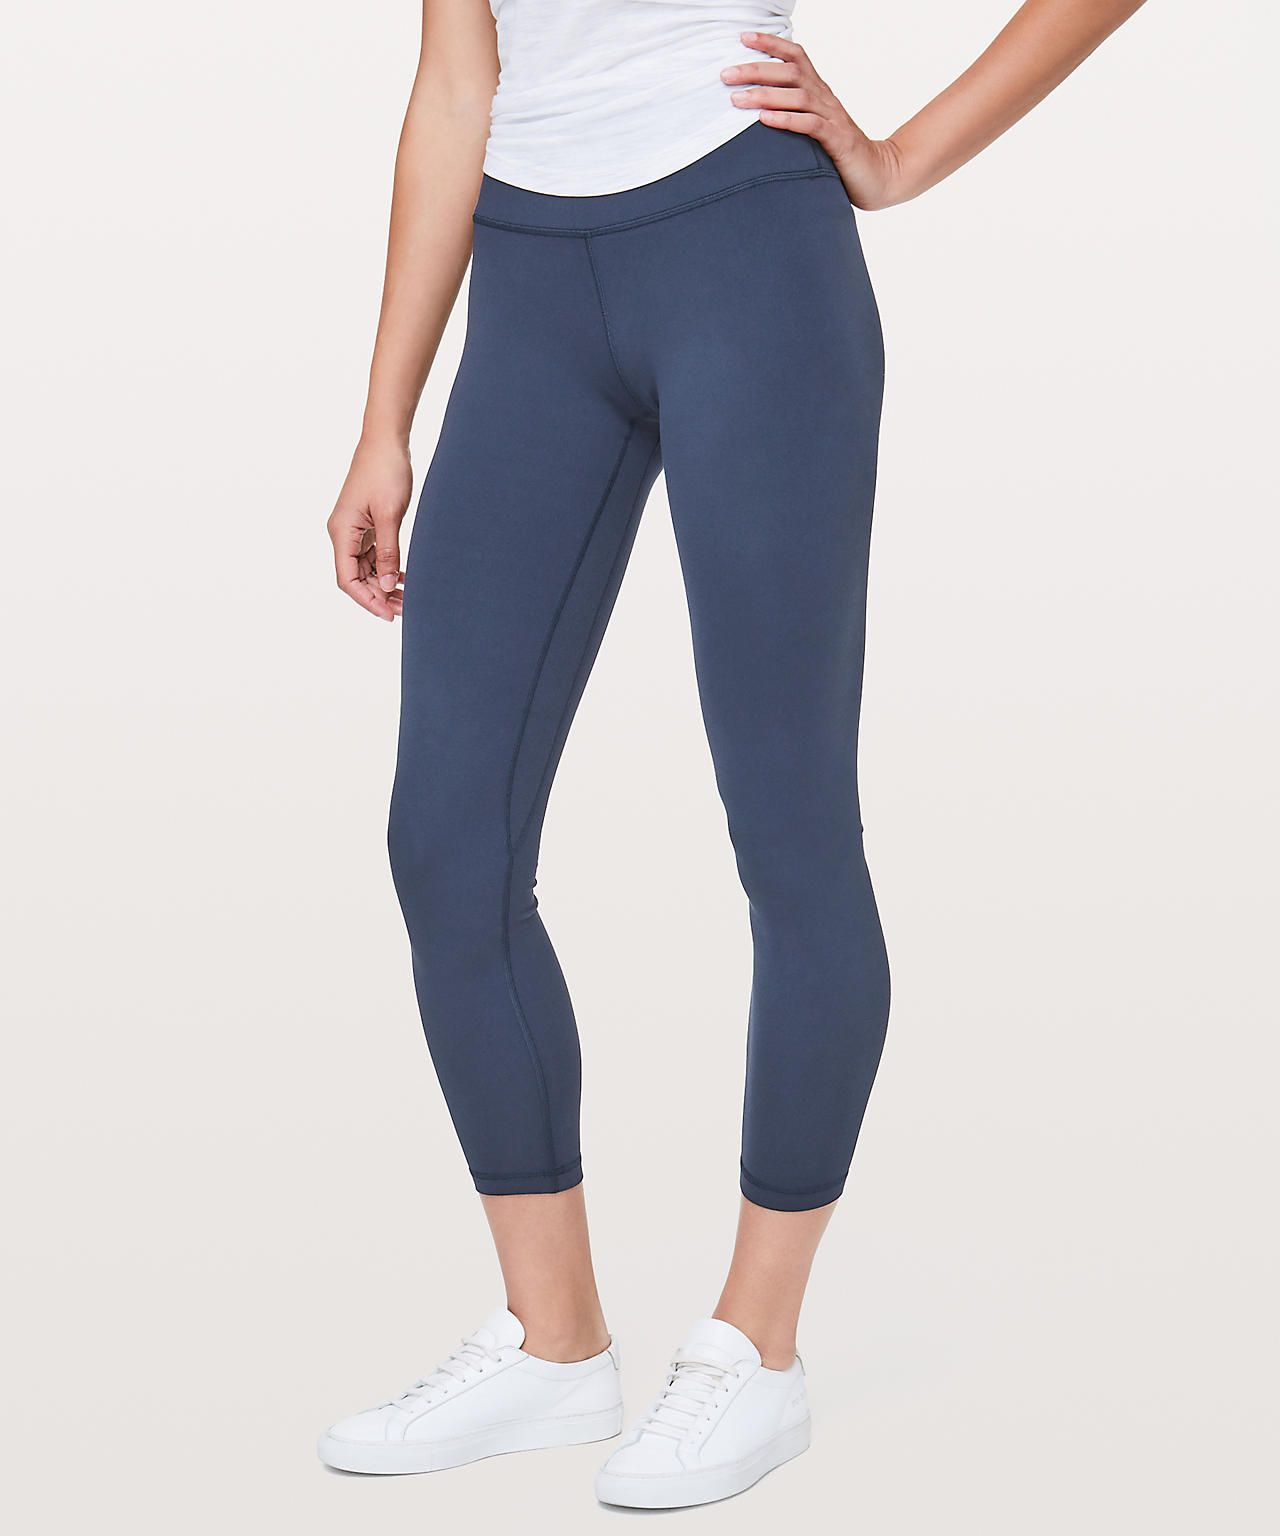 b2d164cf5d Lululemon Align Pant II 25 | Workout | Pants, Pants for women, Yoga ...